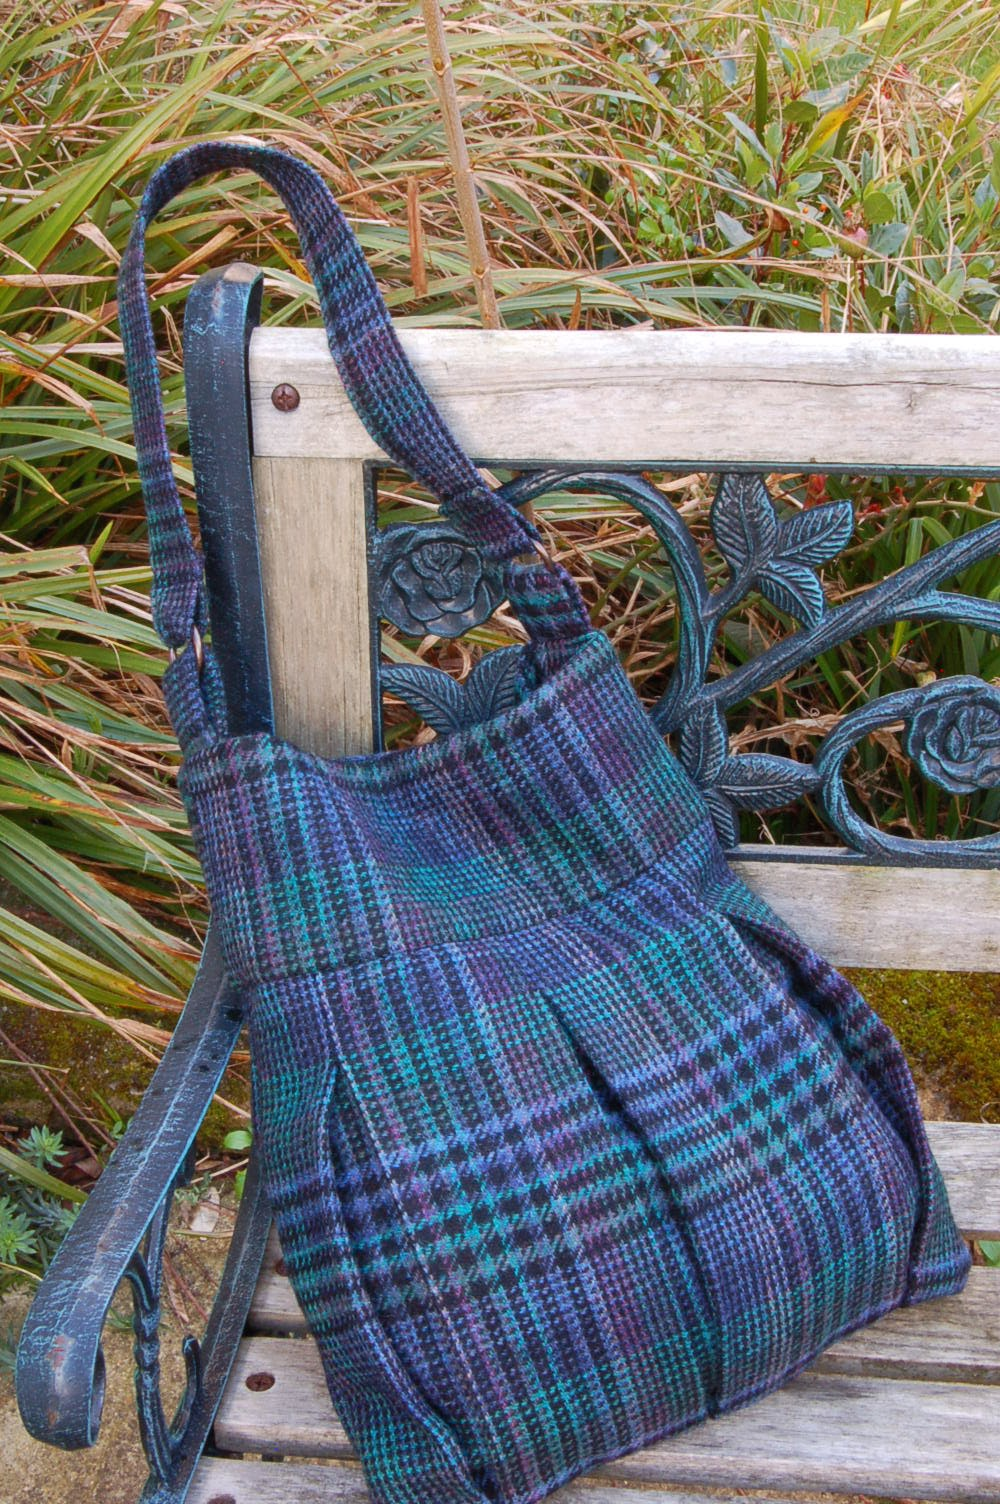 http://vickymyerscreations.co.uk/uncategorized/tweed-skirt-upcycled-bag/